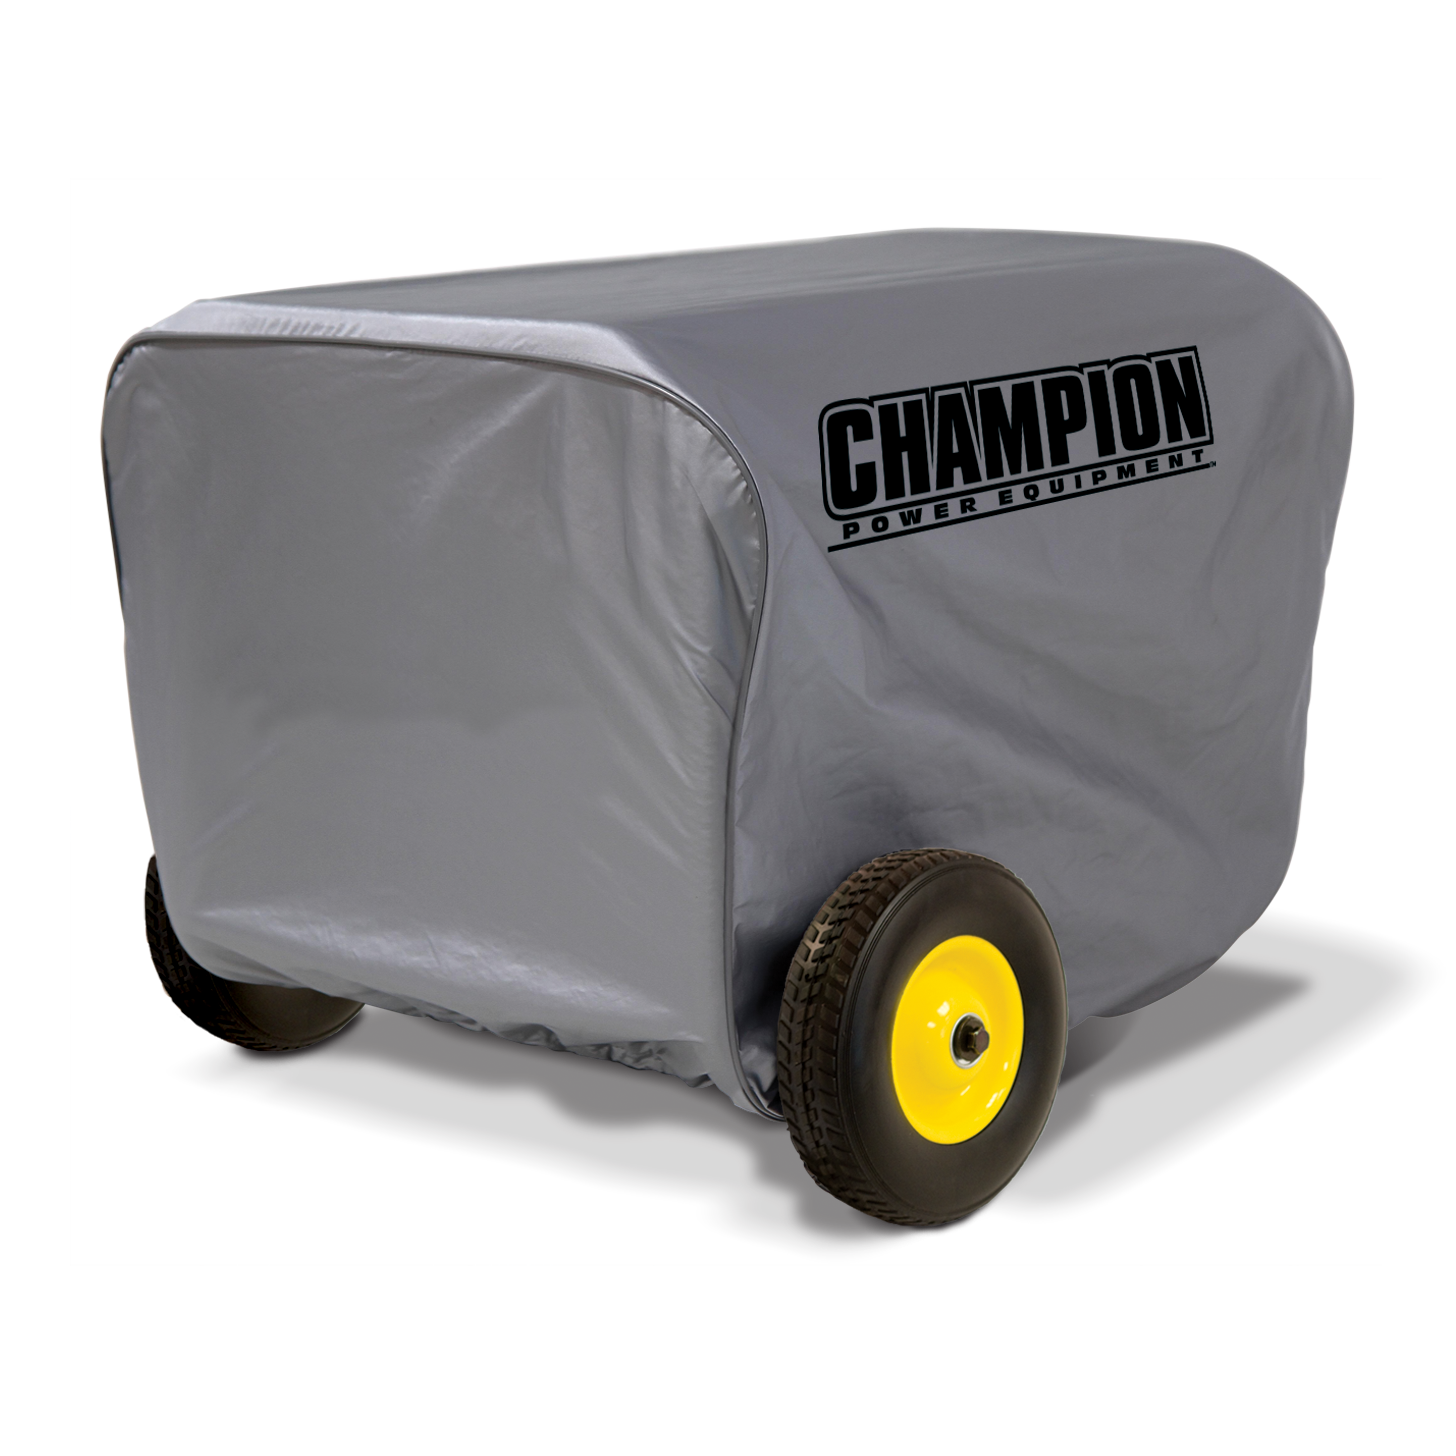 Champion C90016 Weather-Resistant Storage Cover for 4800-11,500-Watt Portable Generators